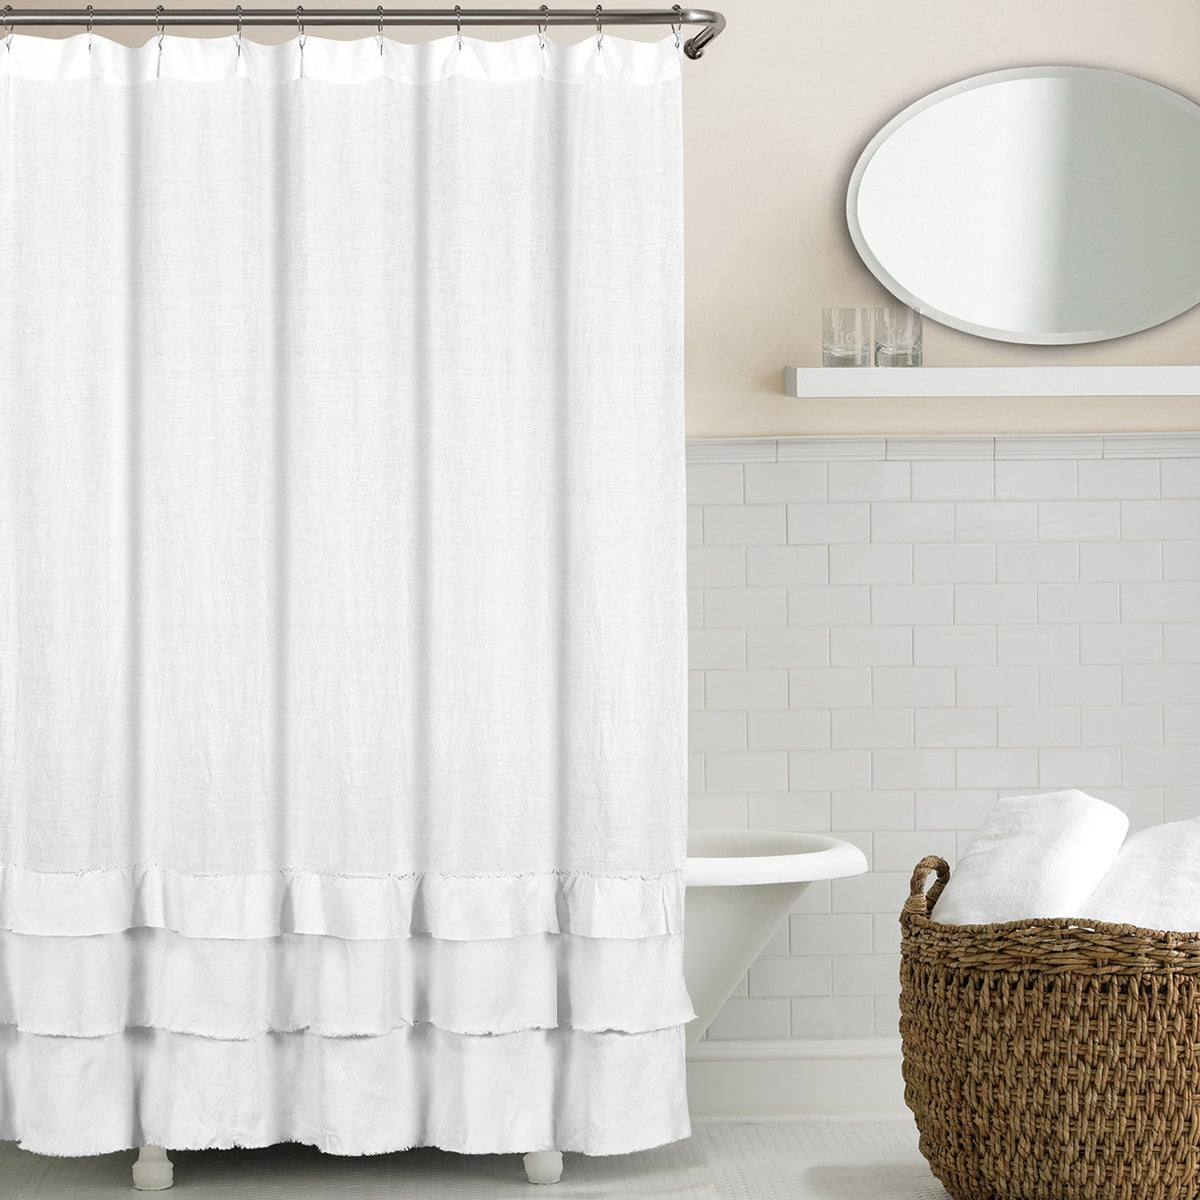 Buy Solid Color Shower Curtains Online at Overstock.com | Our Best ...